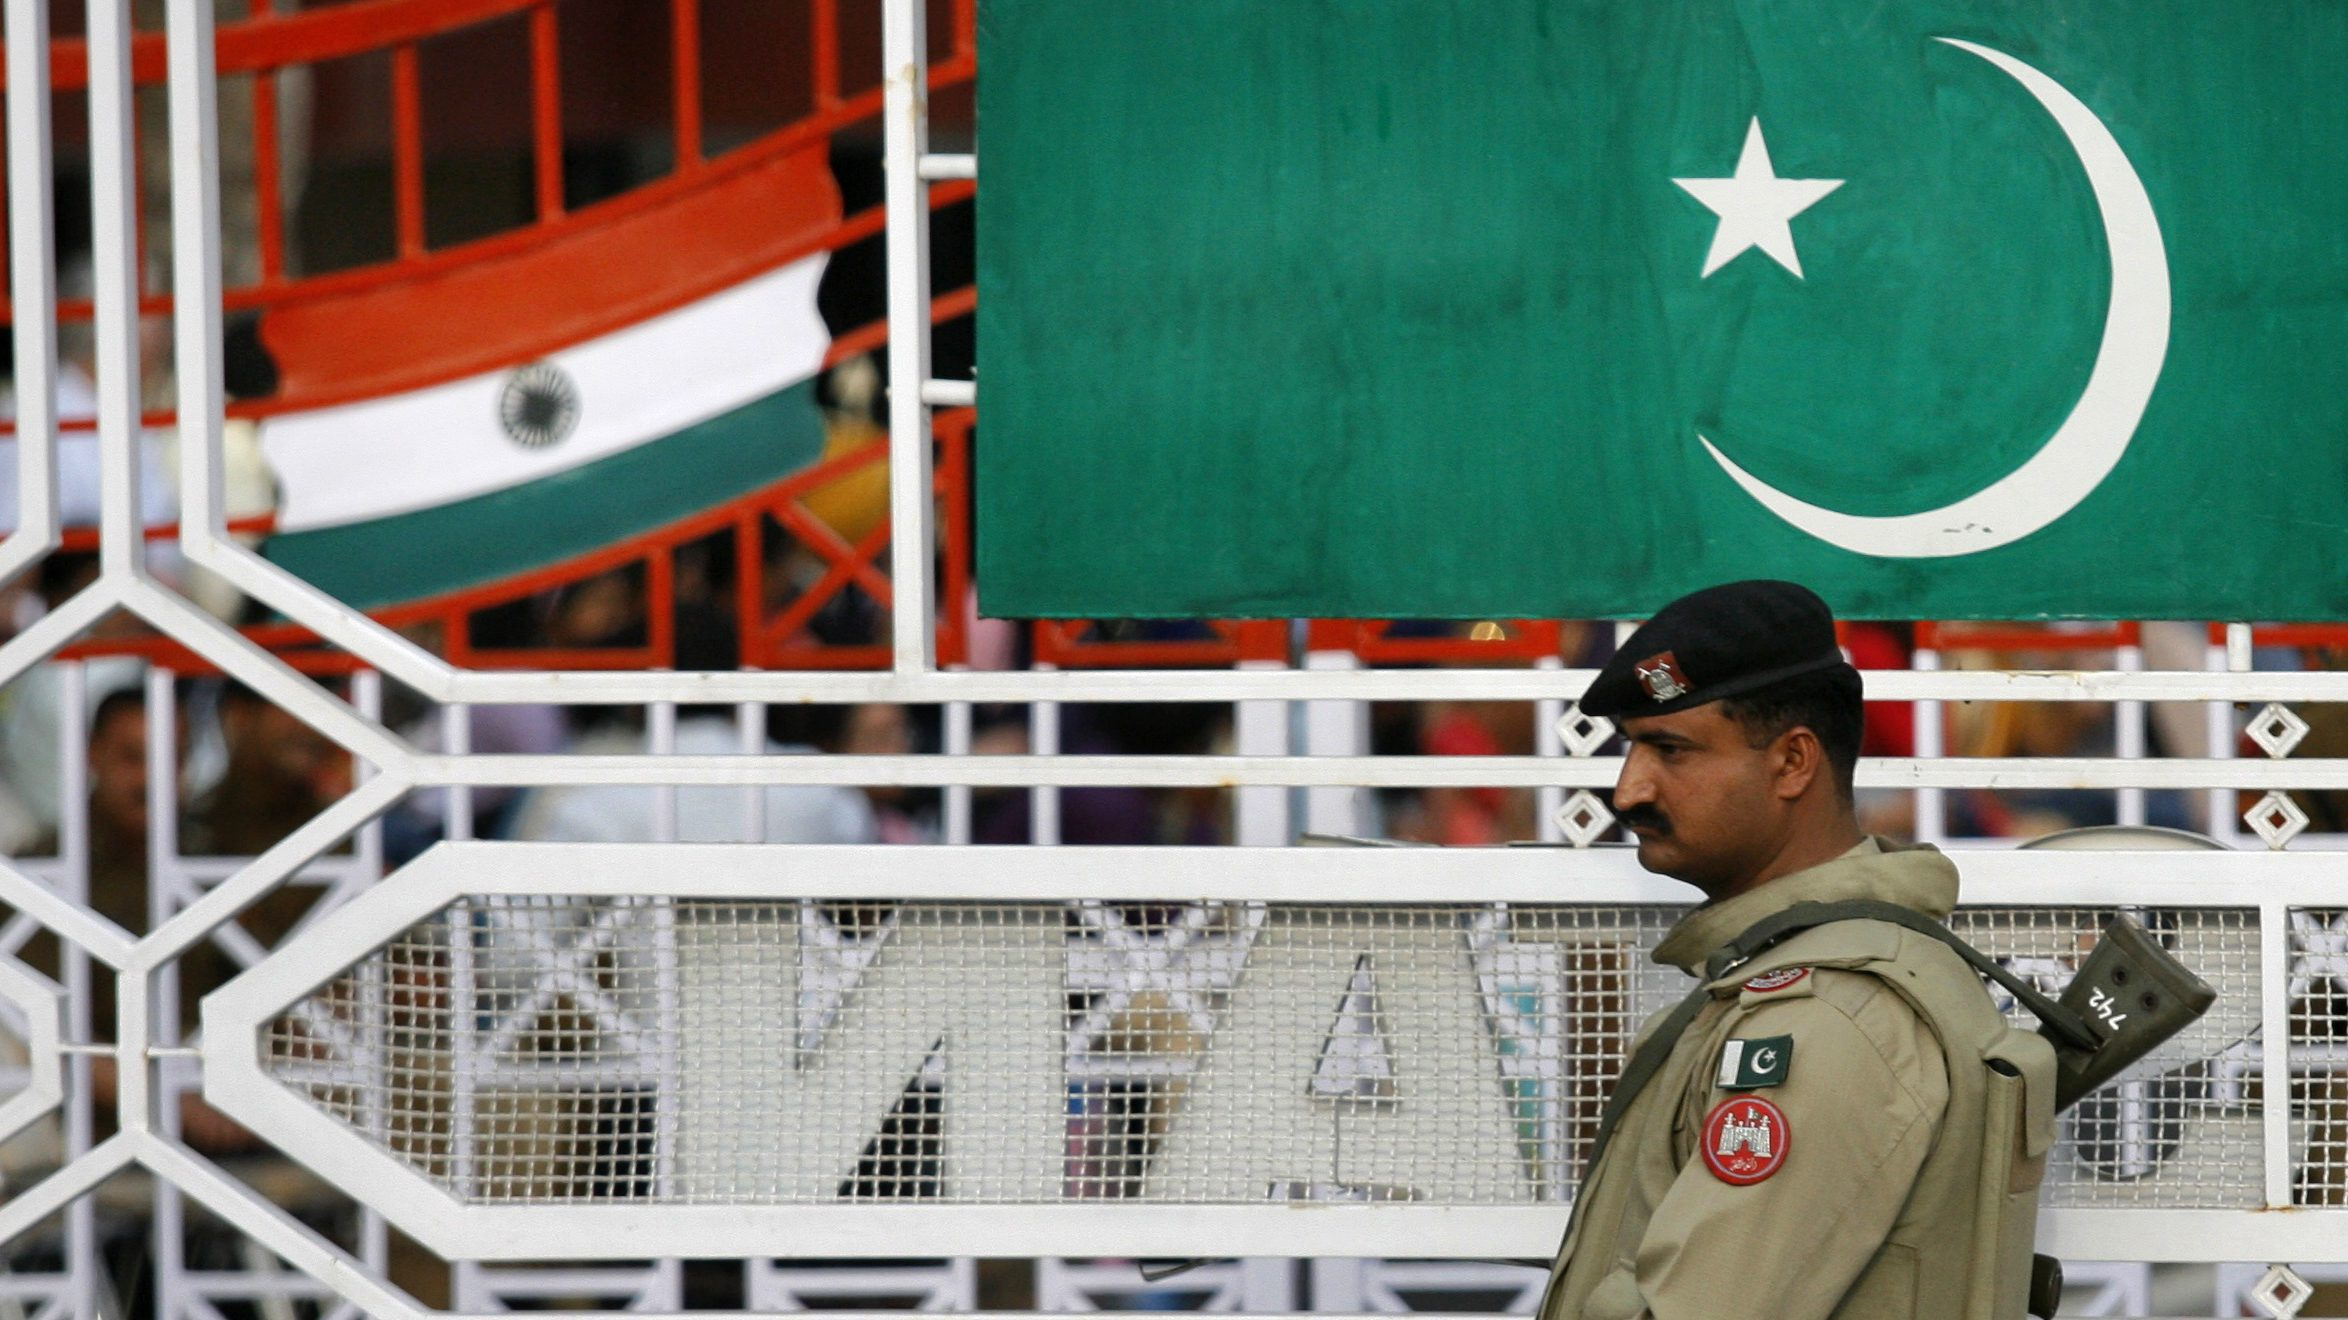 """A Pakistani Ranger stands near the Pakistani flag and Indian flag (L) during a daily parade at the Pakistan-India joint check post at Wagah border, on the outskirts of Lahore February 26, 2010. Commentators in both India and Pakistan greeted on Friday the first official talks between their countries since the 2008 Mumbai attacks with a degree of cynicism even though no breakthrough had been expected. The two nations' top diplomats met in a former princely palace in a heavily guarded New Delhi neighbourhood on Thursday and agreed to """"remain in touch"""" to build trust. REUTERS/Mohsin Raza   (PAKISTAN - Tags: POLITICS CIVIL UNREST MILITARY) - RTR2AY7W"""